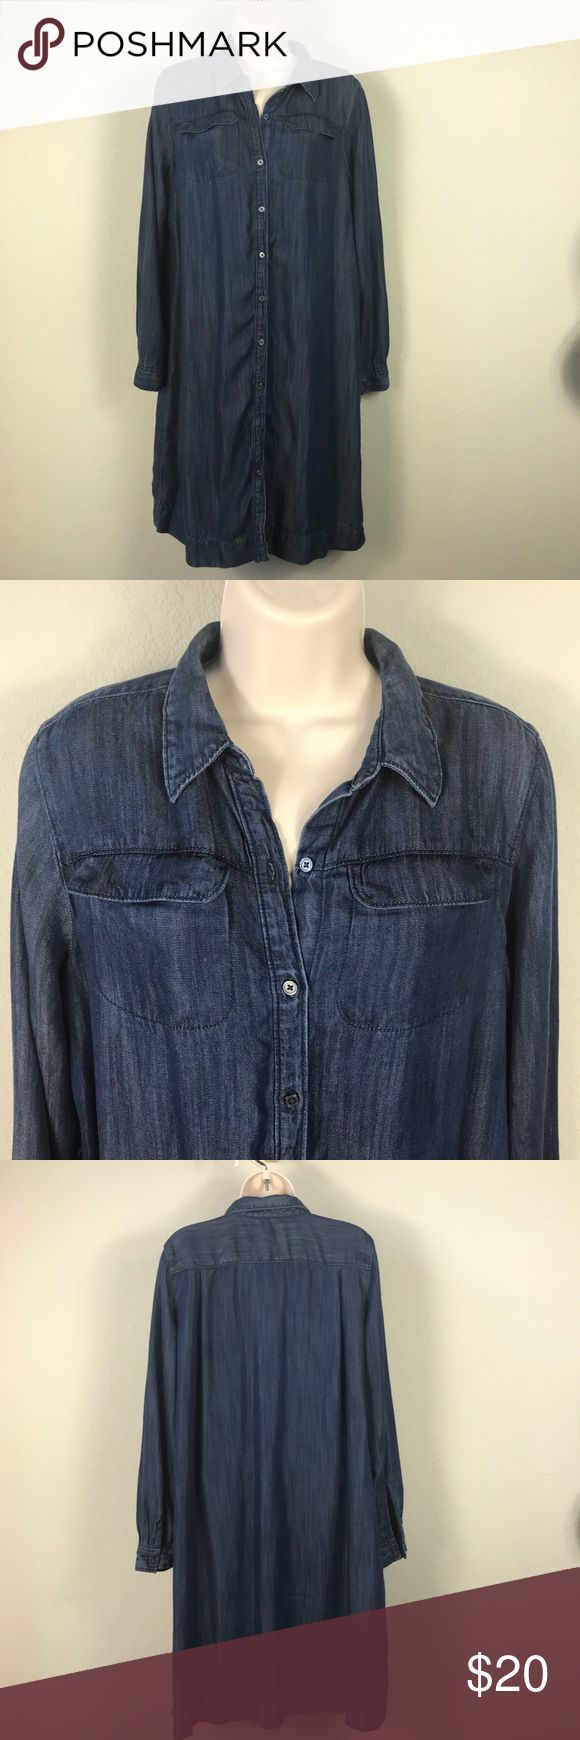 Ann Taylor Loft dark denim chambray shirtdress Ann Taylor LOFT dark blue chambray with slight metallic sheen button front shirtdress with two front pockets. Size says M but fits oversized. Missing belt, great condition otherwise. LOFT Dresses